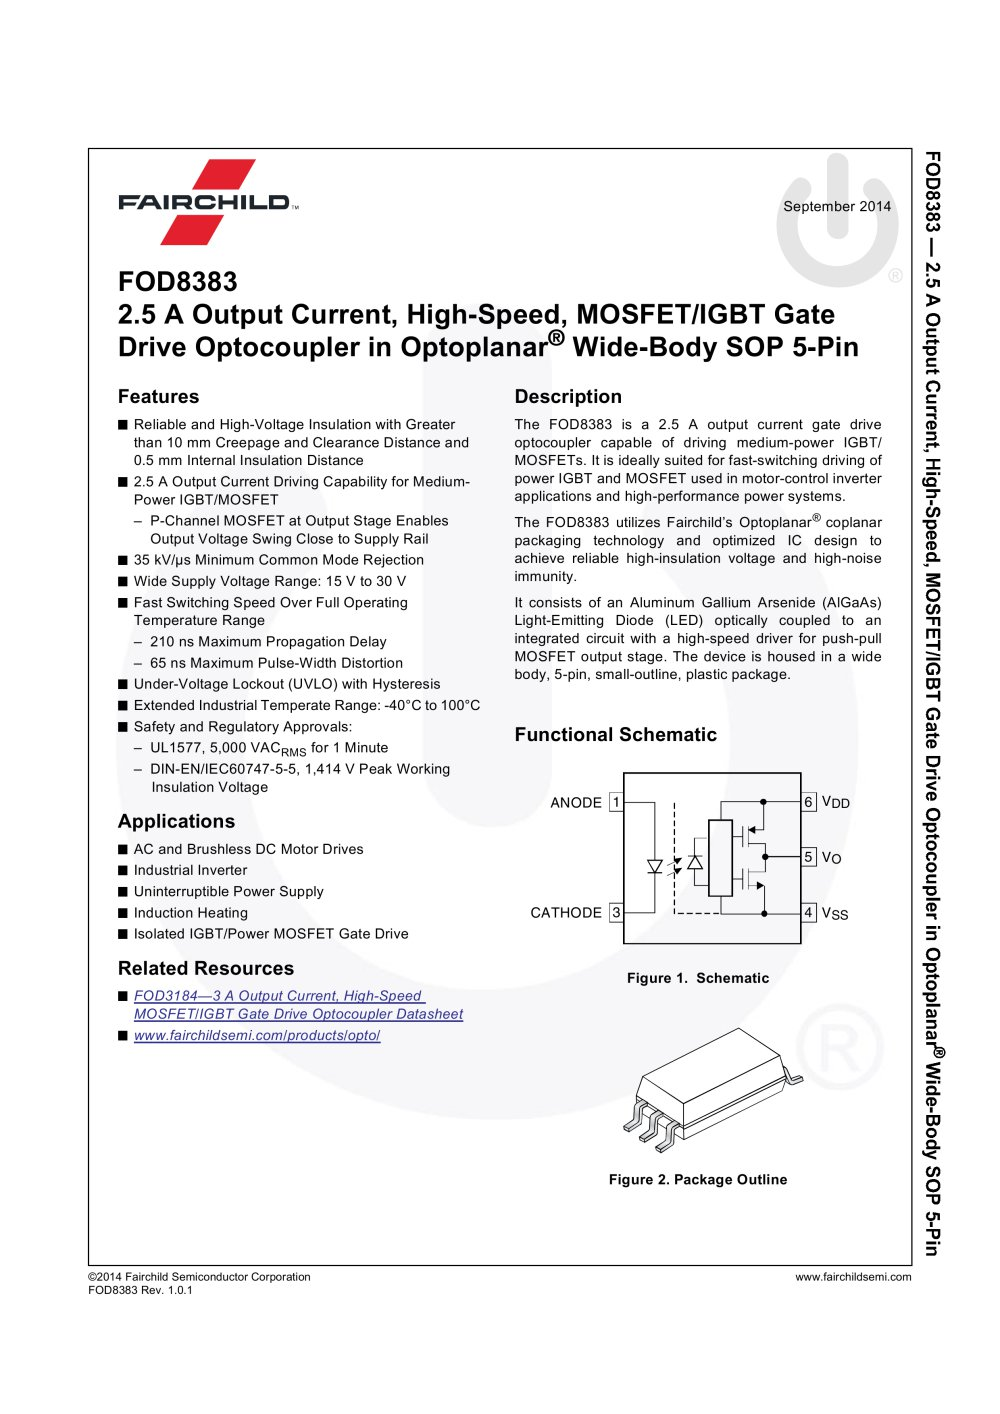 Fod8383 25 A Output Current High Speed Mosfet Igbt Gate Drive Led Optocoupler Circuit In Optoplanar Wide Body Sop 5 Pin 1 17 Pages